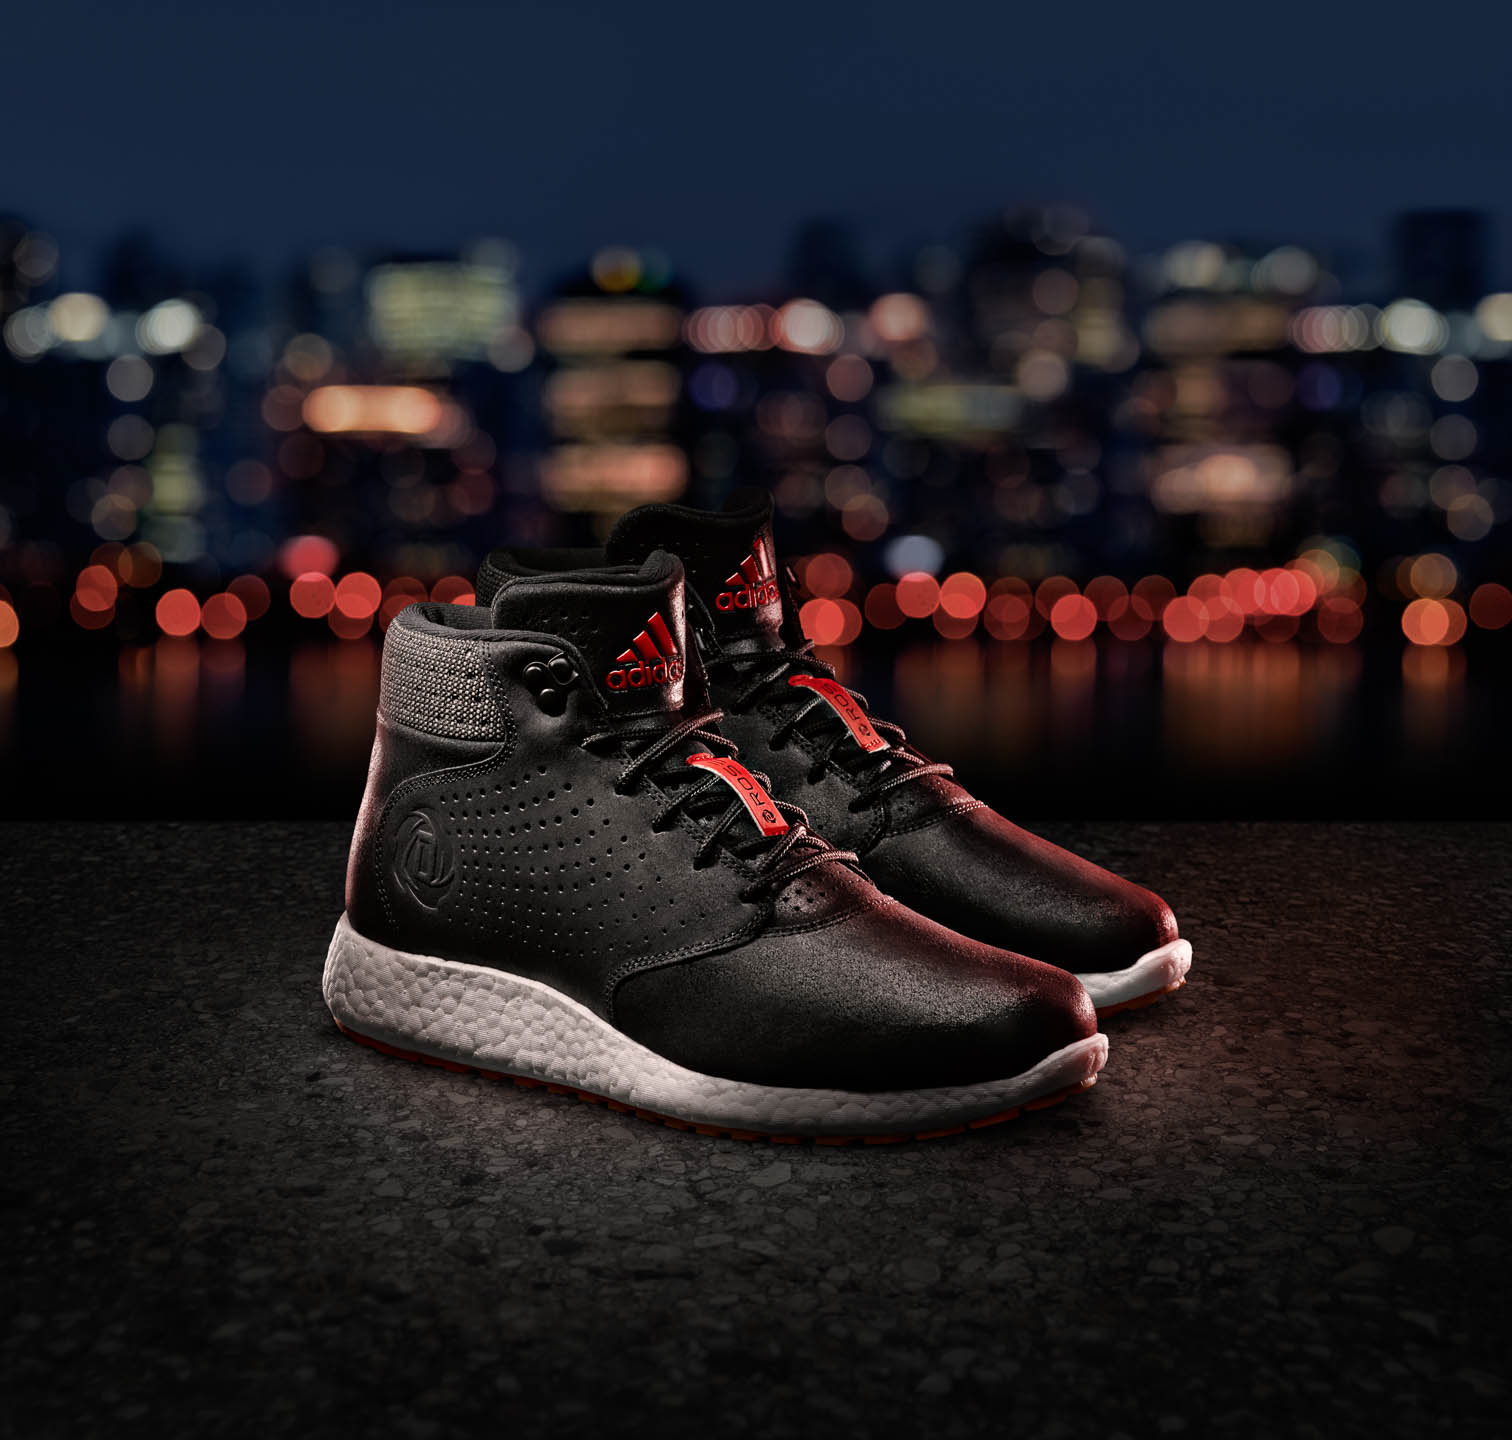 Adidas Lakeshore basketball footwear by Steve Temple Photography